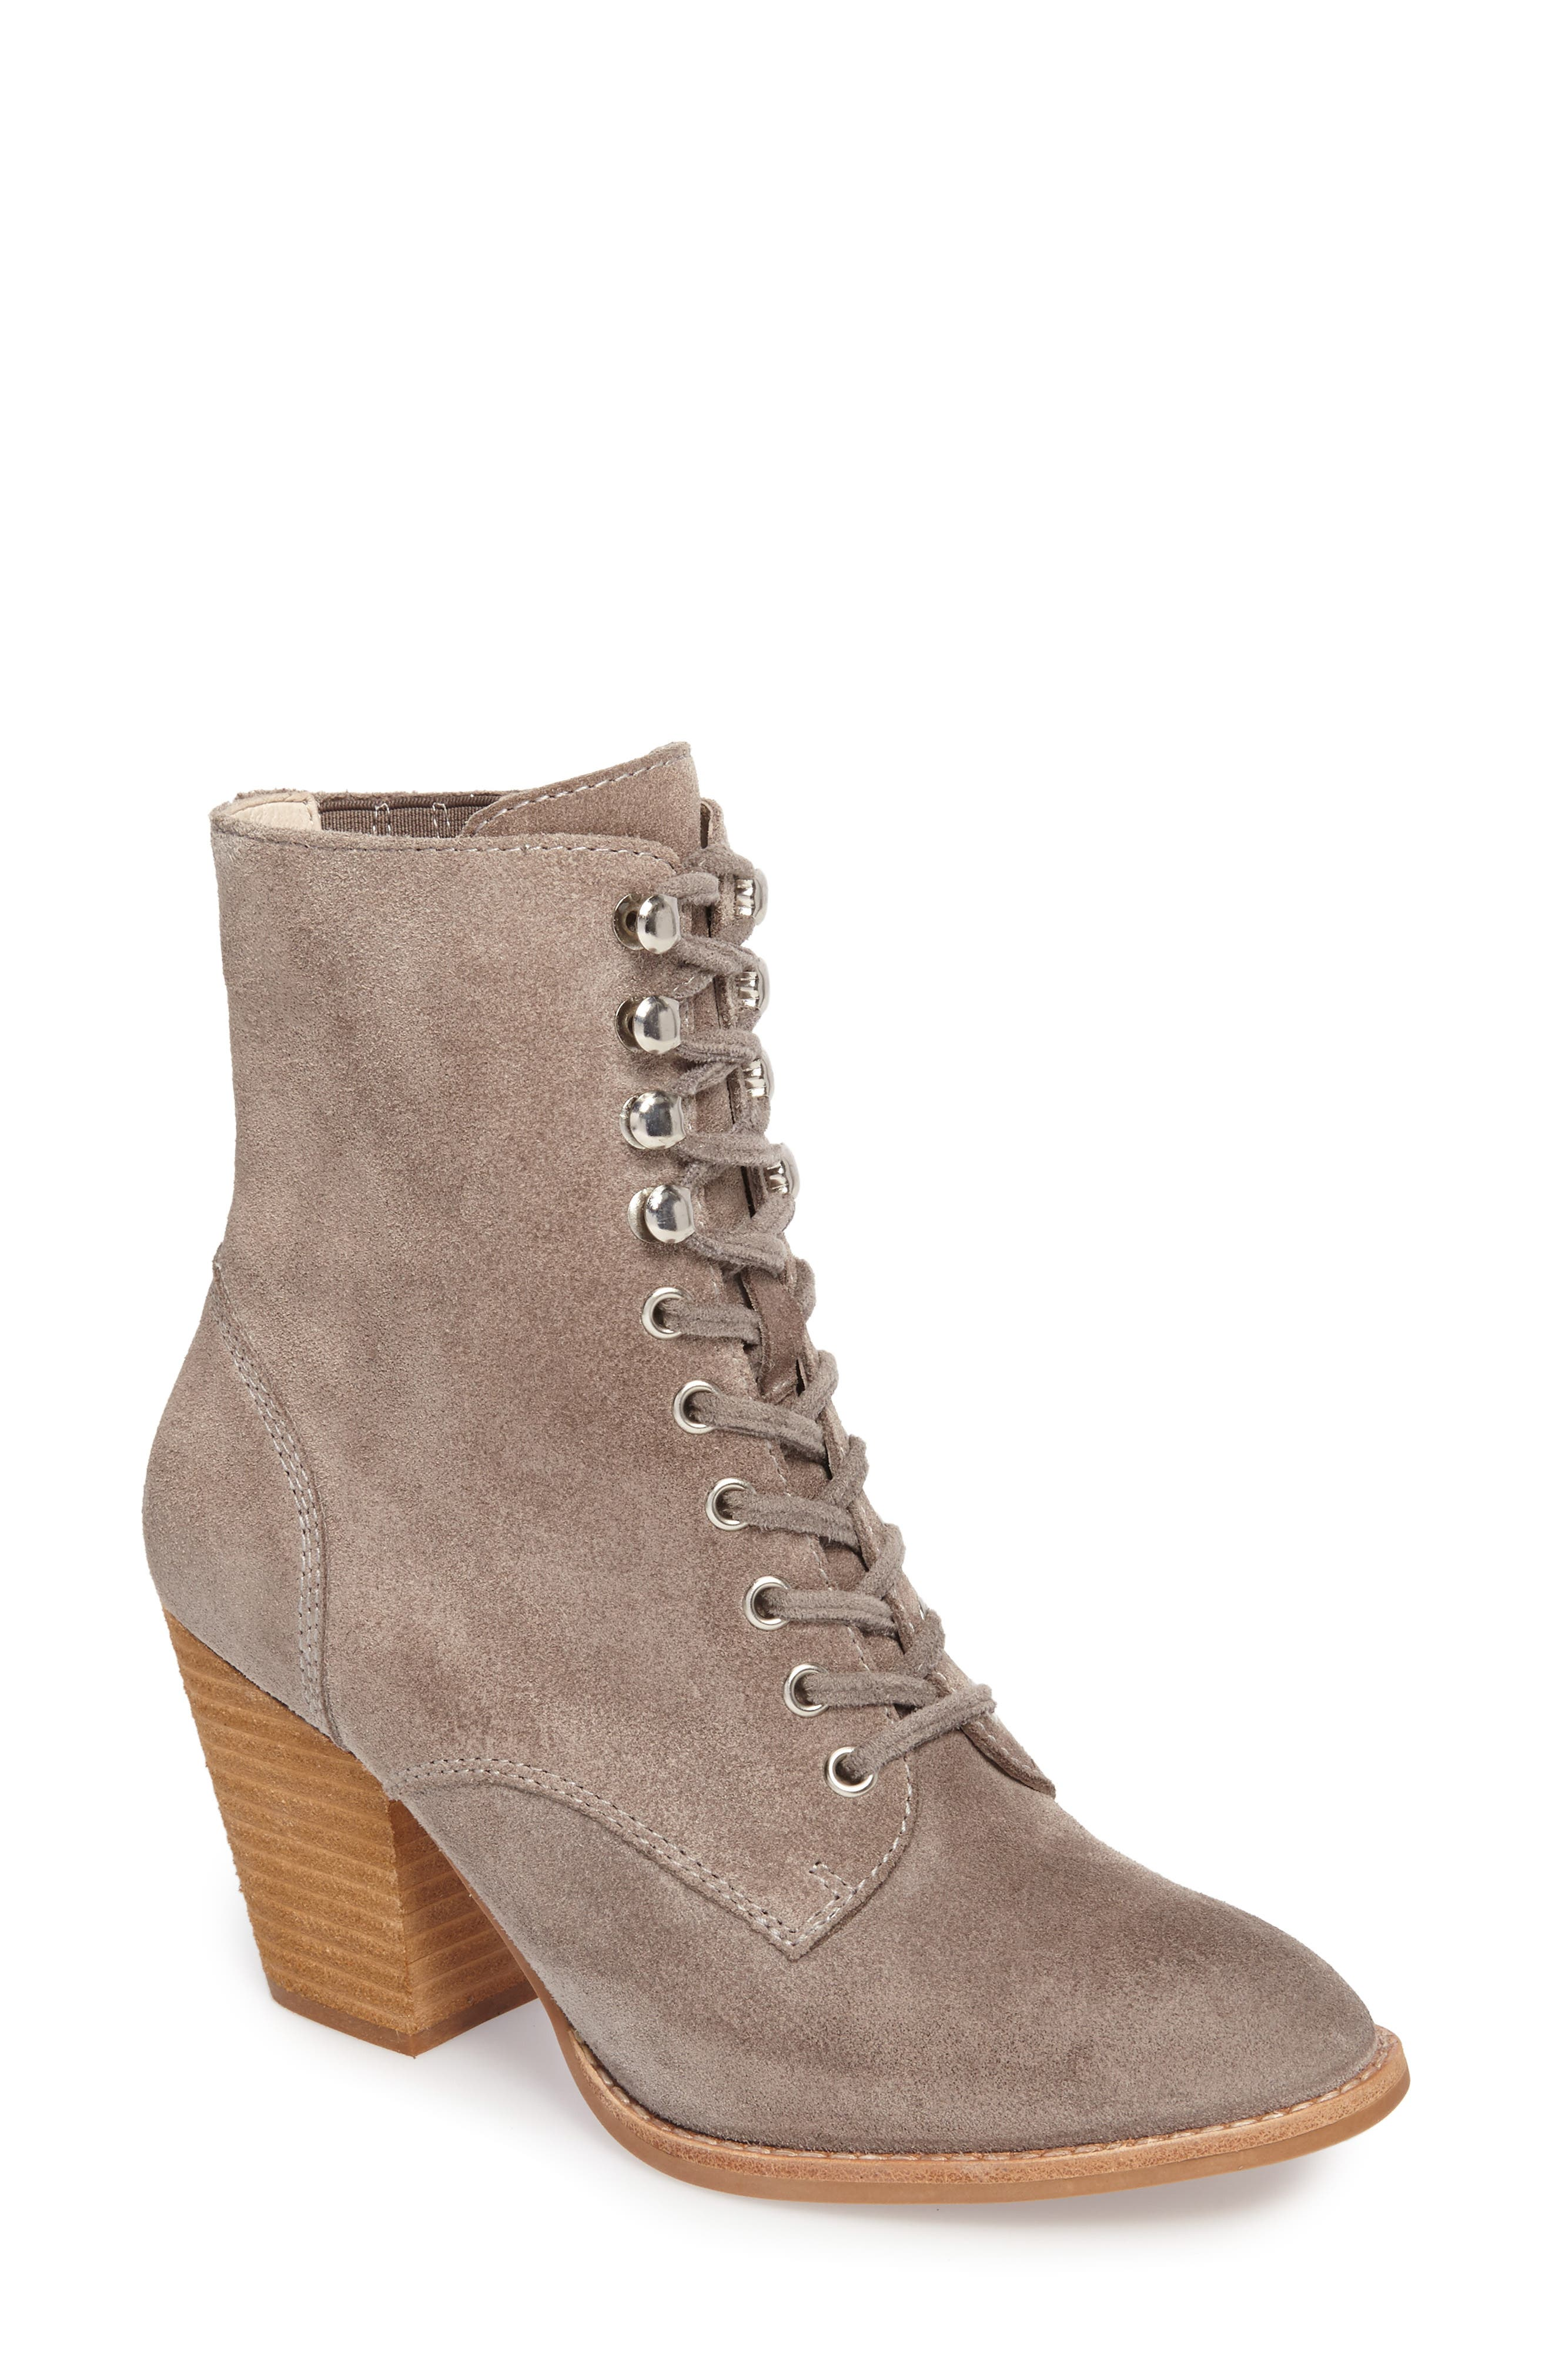 Elman Bootie,                         Main,                         color, Taupe Suede